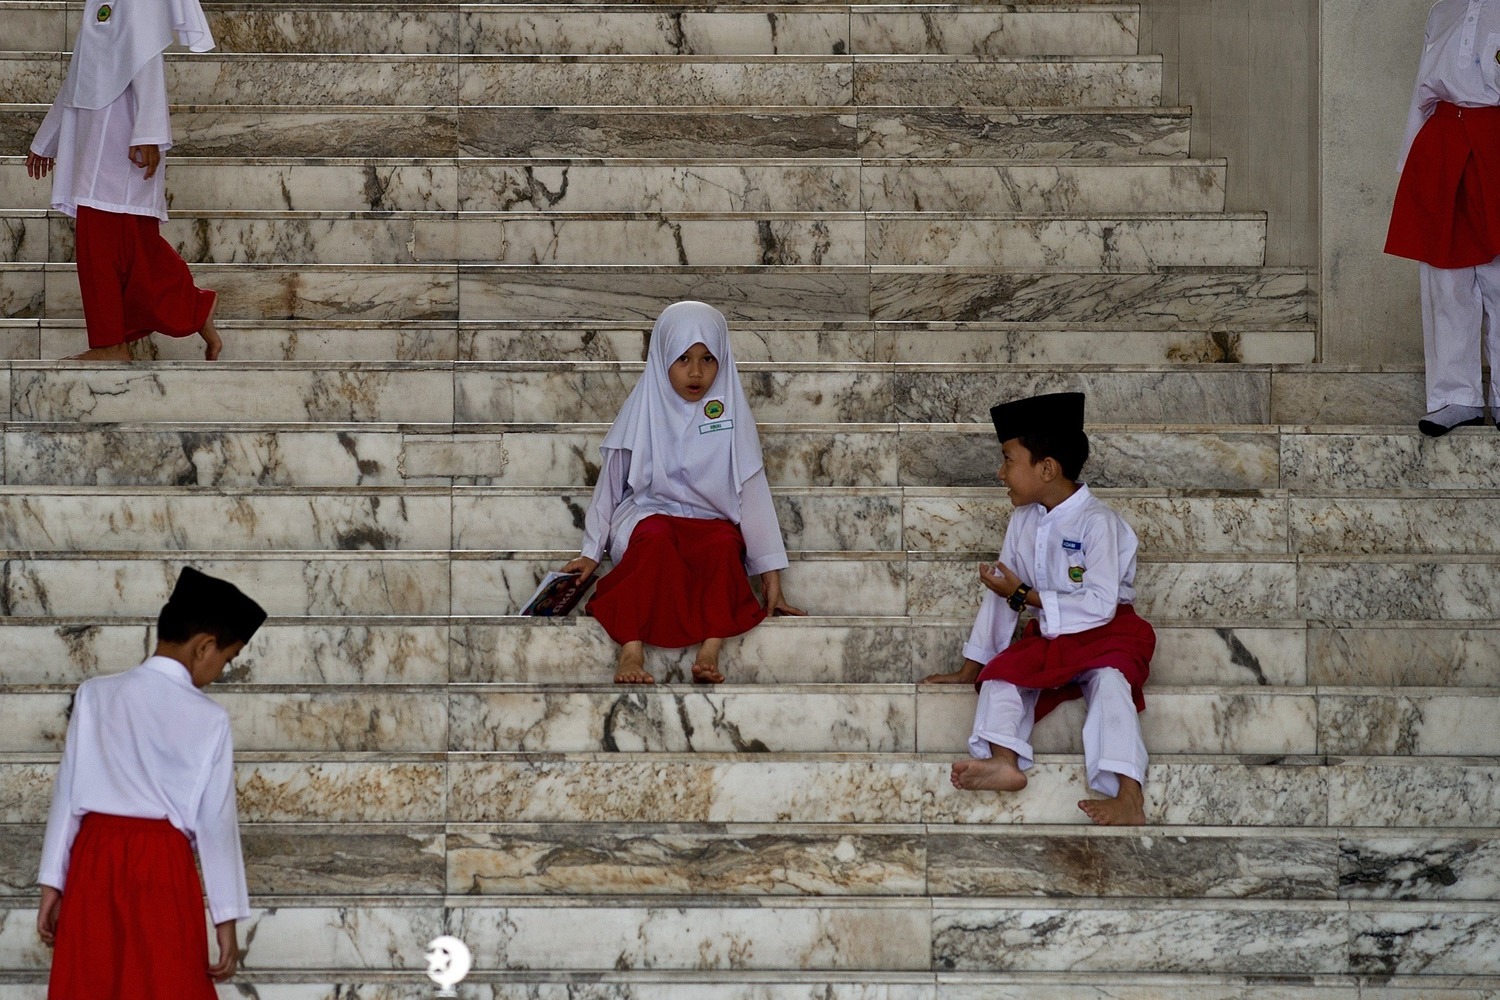 Jul. 2, 2014. Young Malaysian Muslim children play on the steps of a mosque after attending their classes during the Islamic month of Ramadan in Kuala Lumpur.